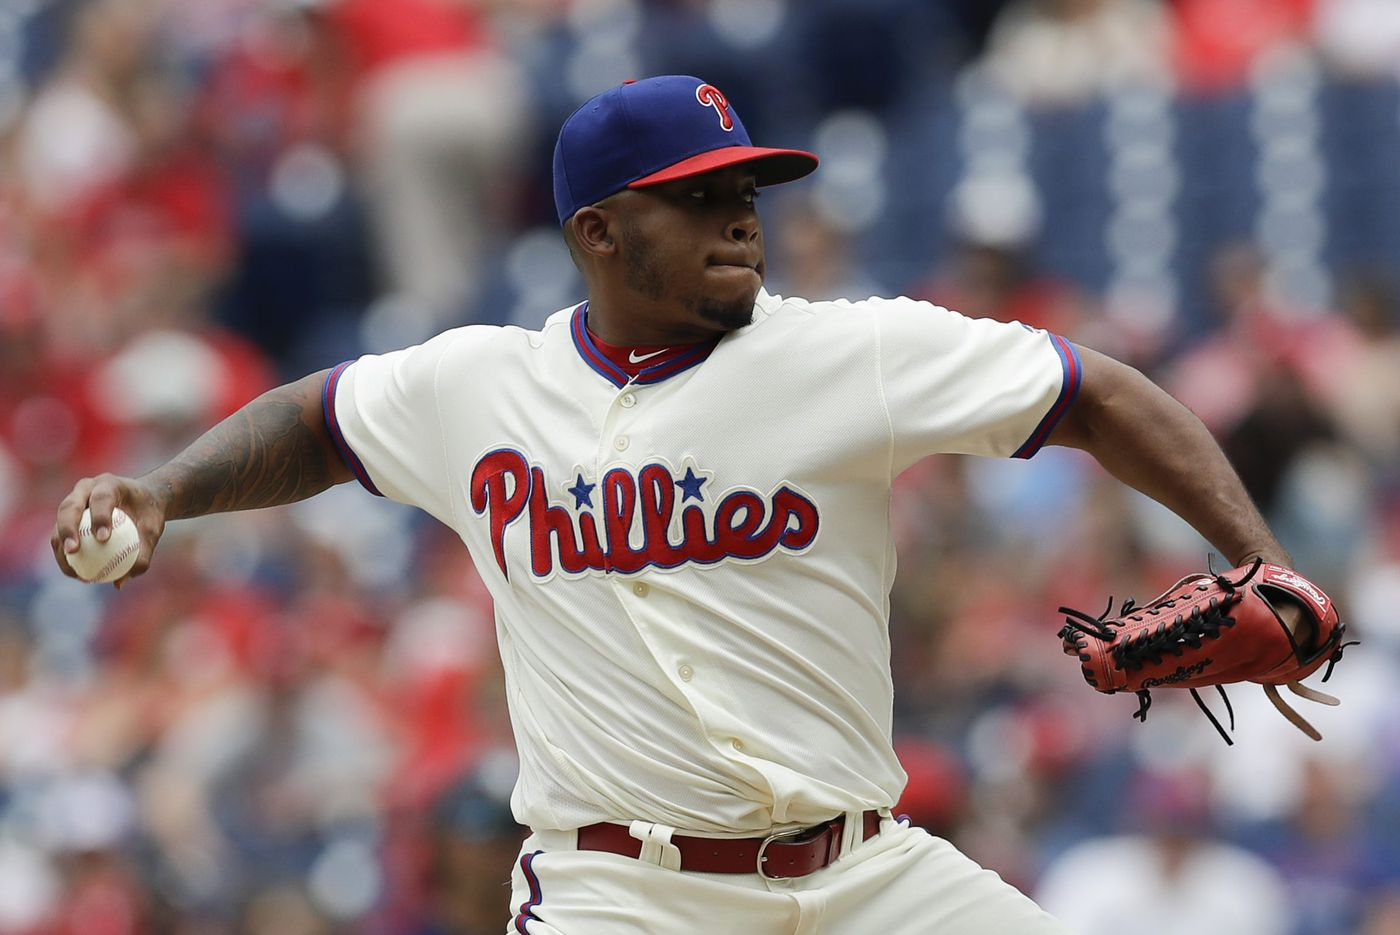 Phillies' Edubray Ramos placed on disabled list with knee injury